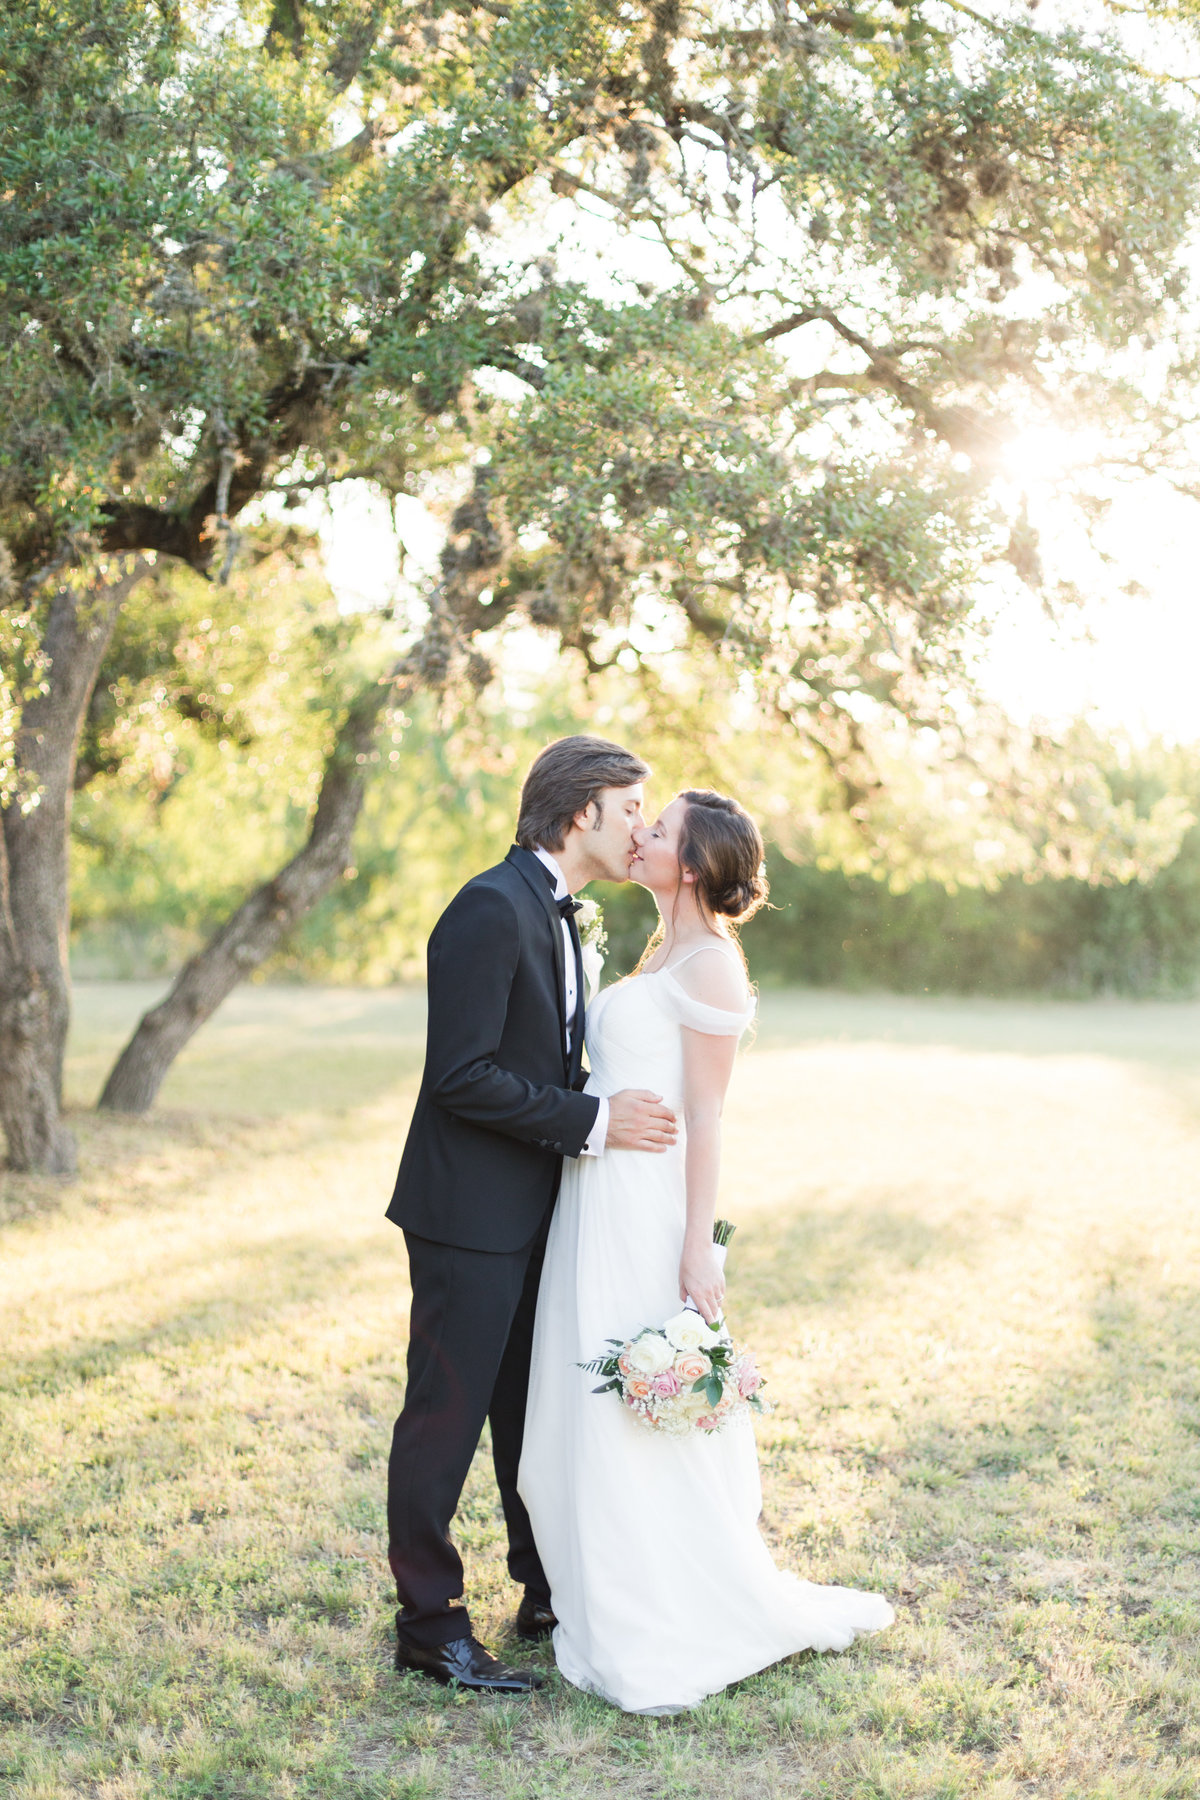 A Backyard San Antonio Italian Wedding by Allison Jeffers Wedding Photography